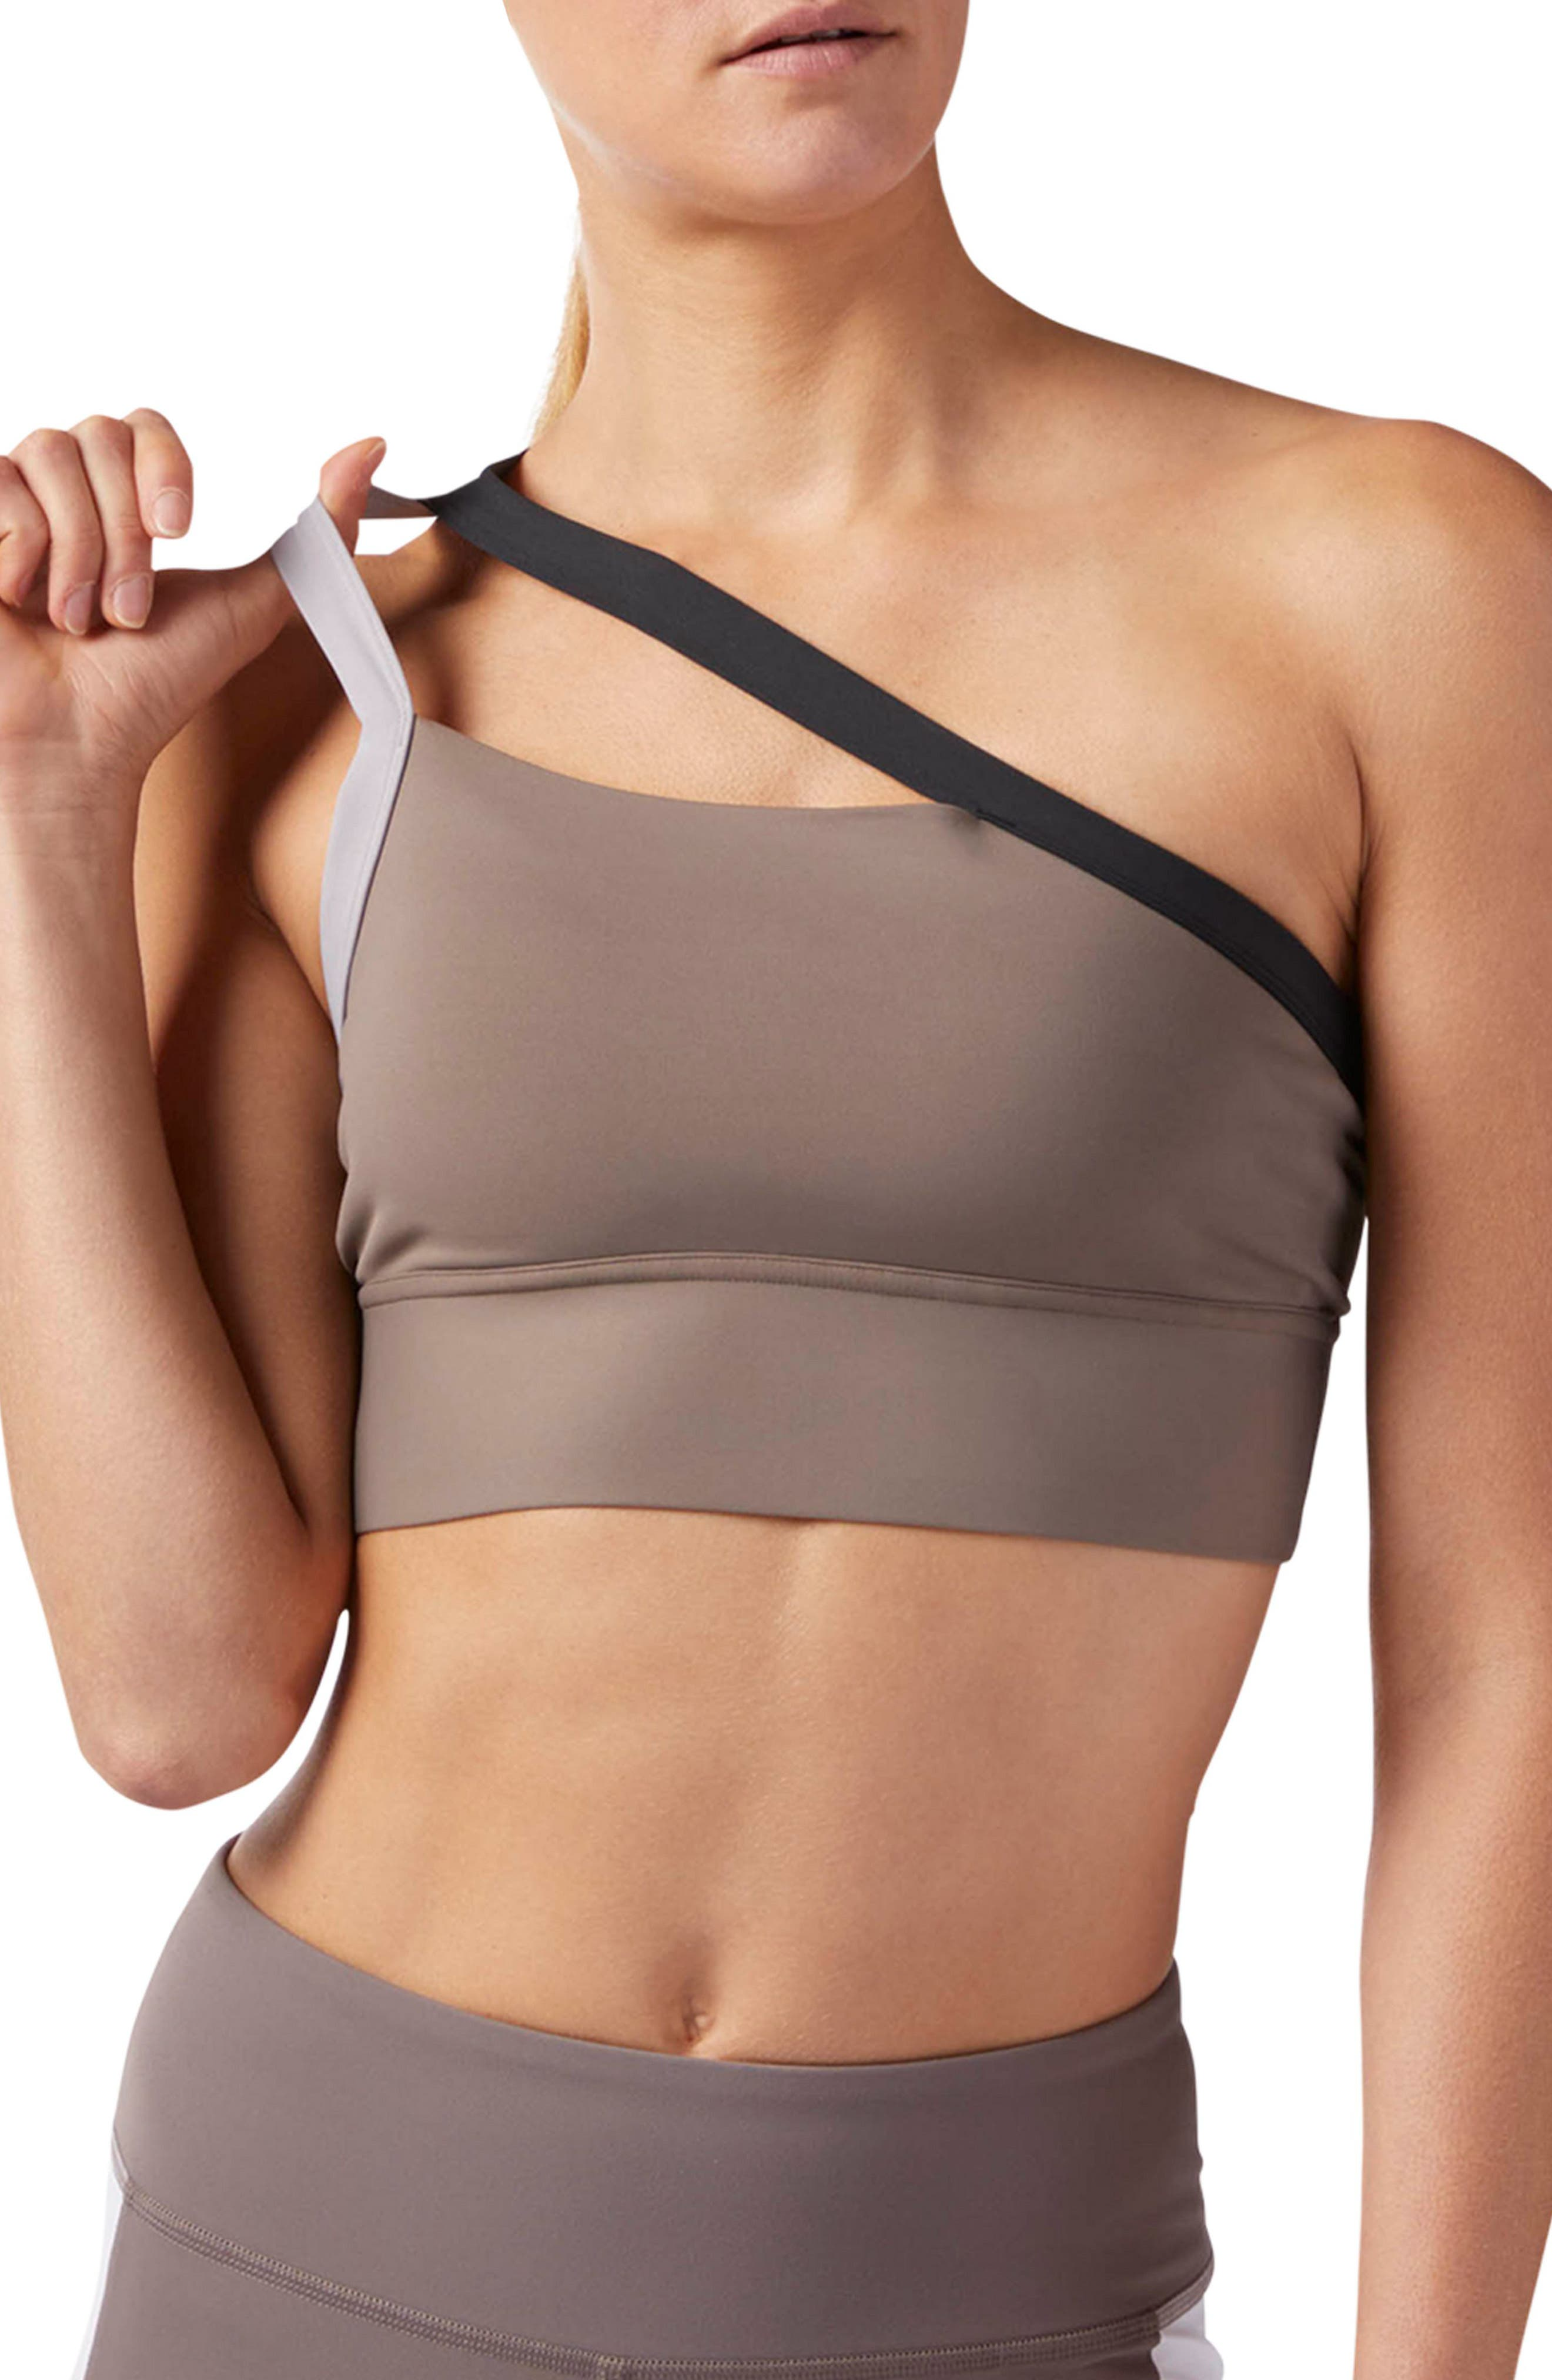 One-Shoulder Sports Bra,                         Main,                         color, SMOKY TAUPE S18-R